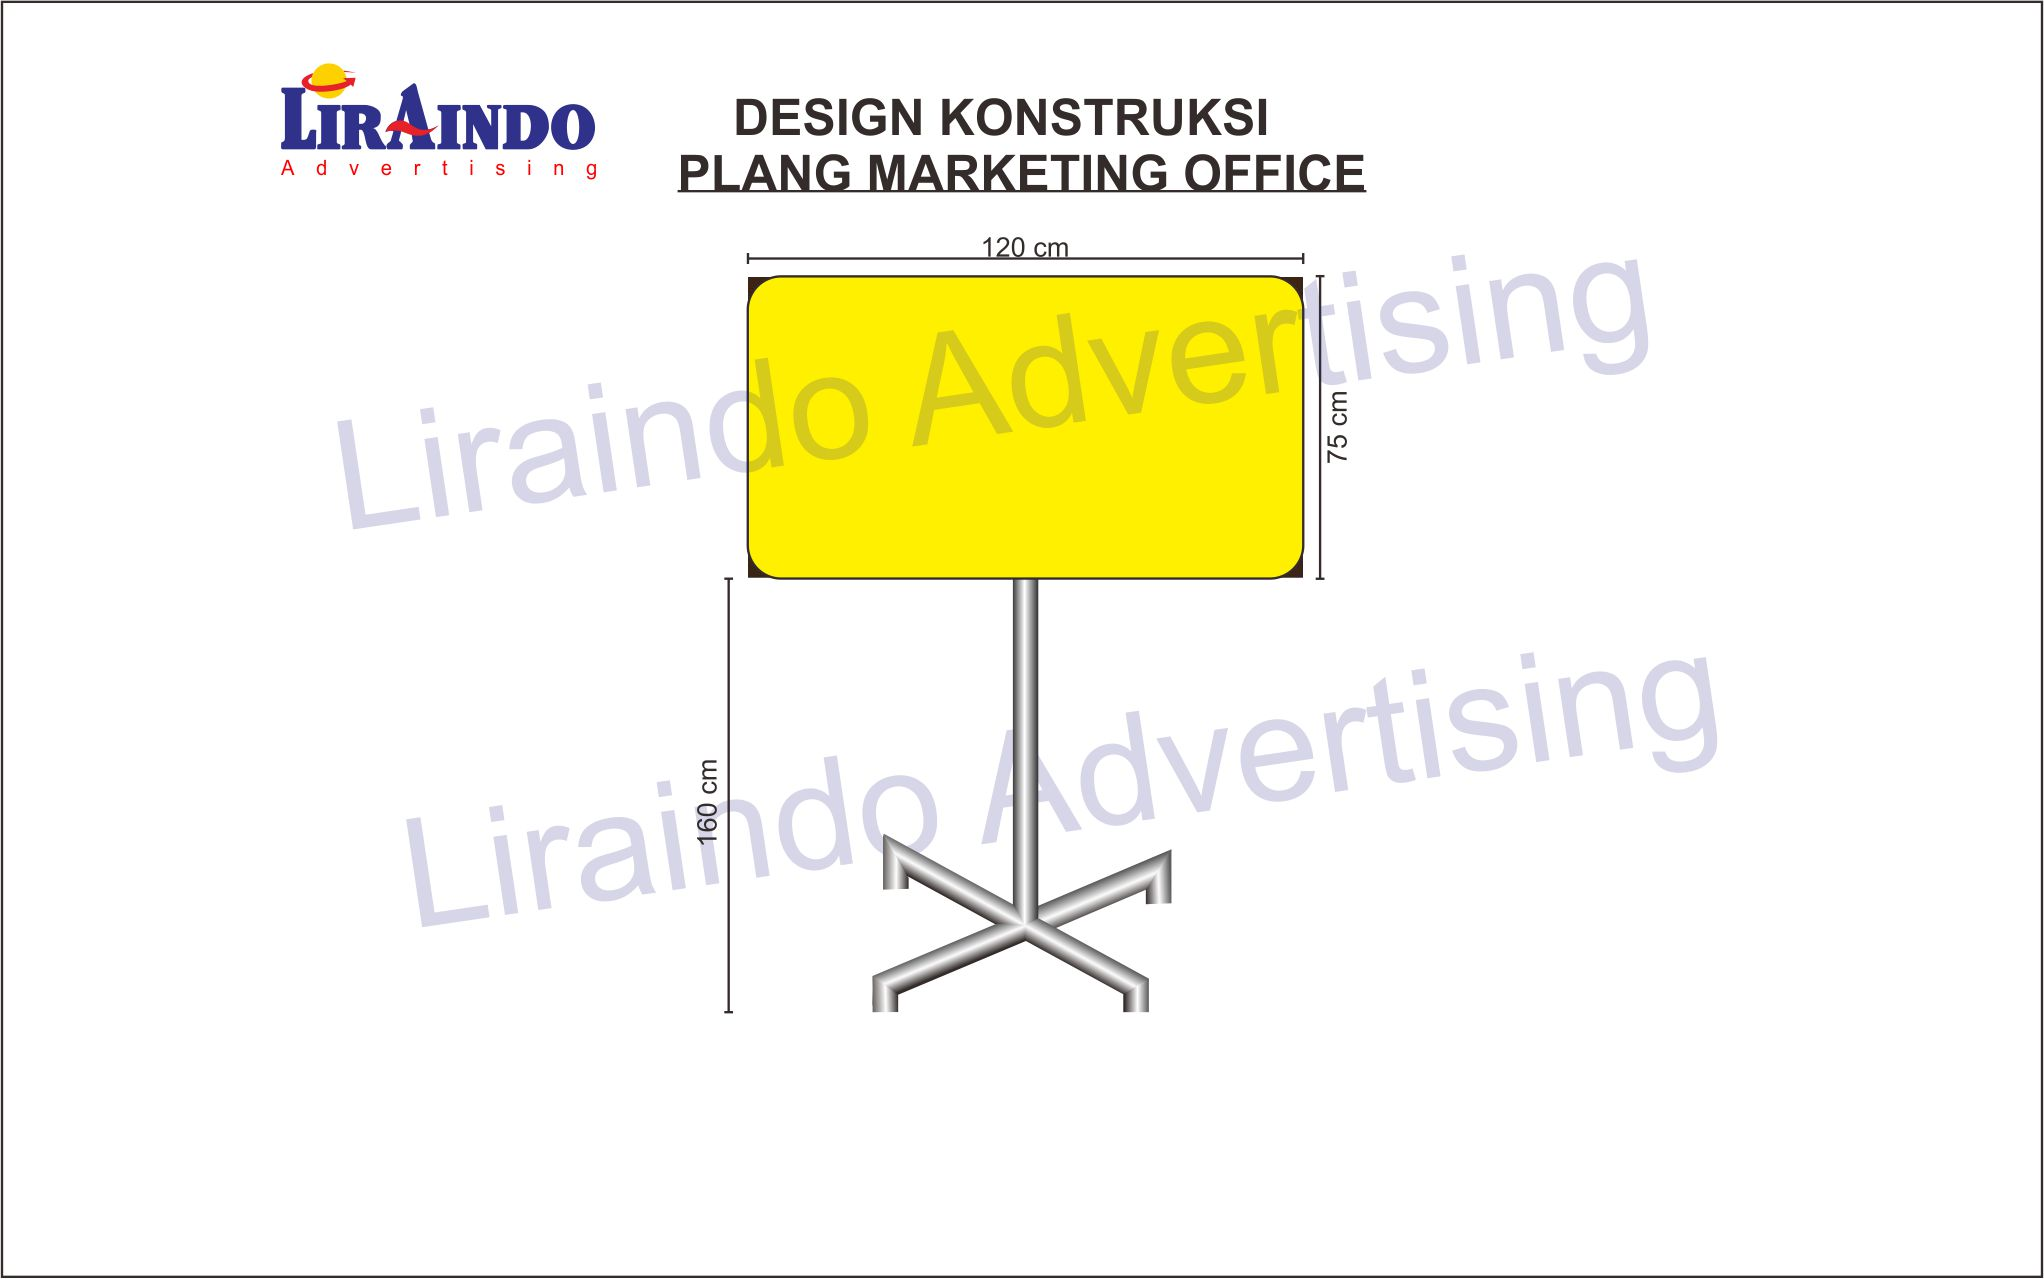 Konstruksi Plang Marketing Office